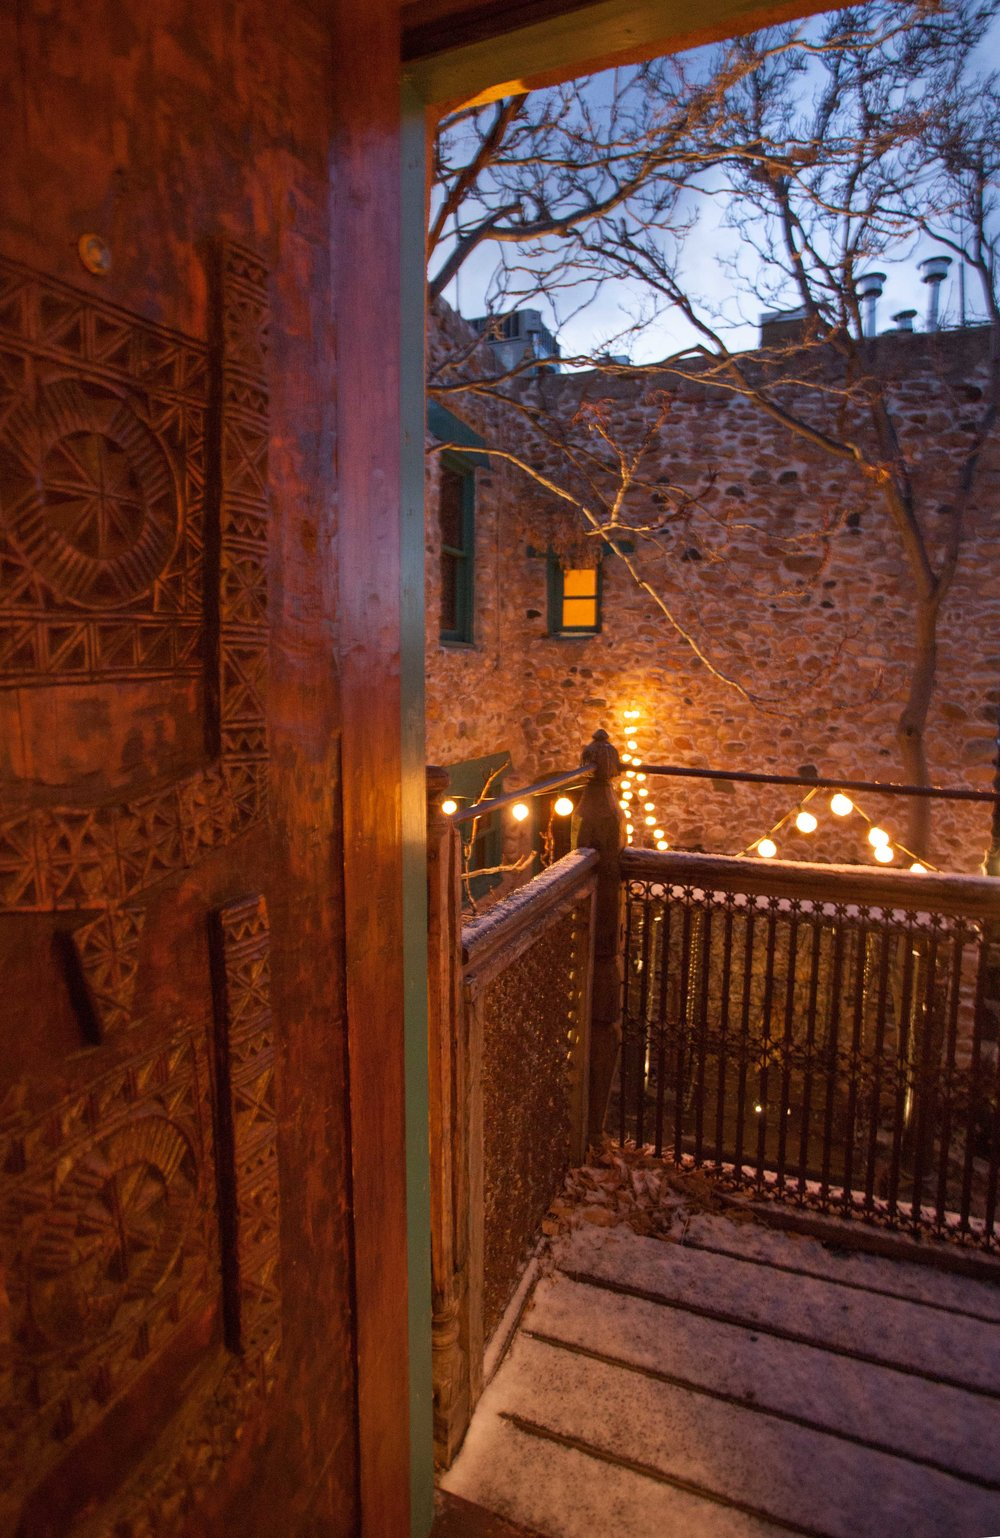 Balcony view overlooking the stone house courtyard.